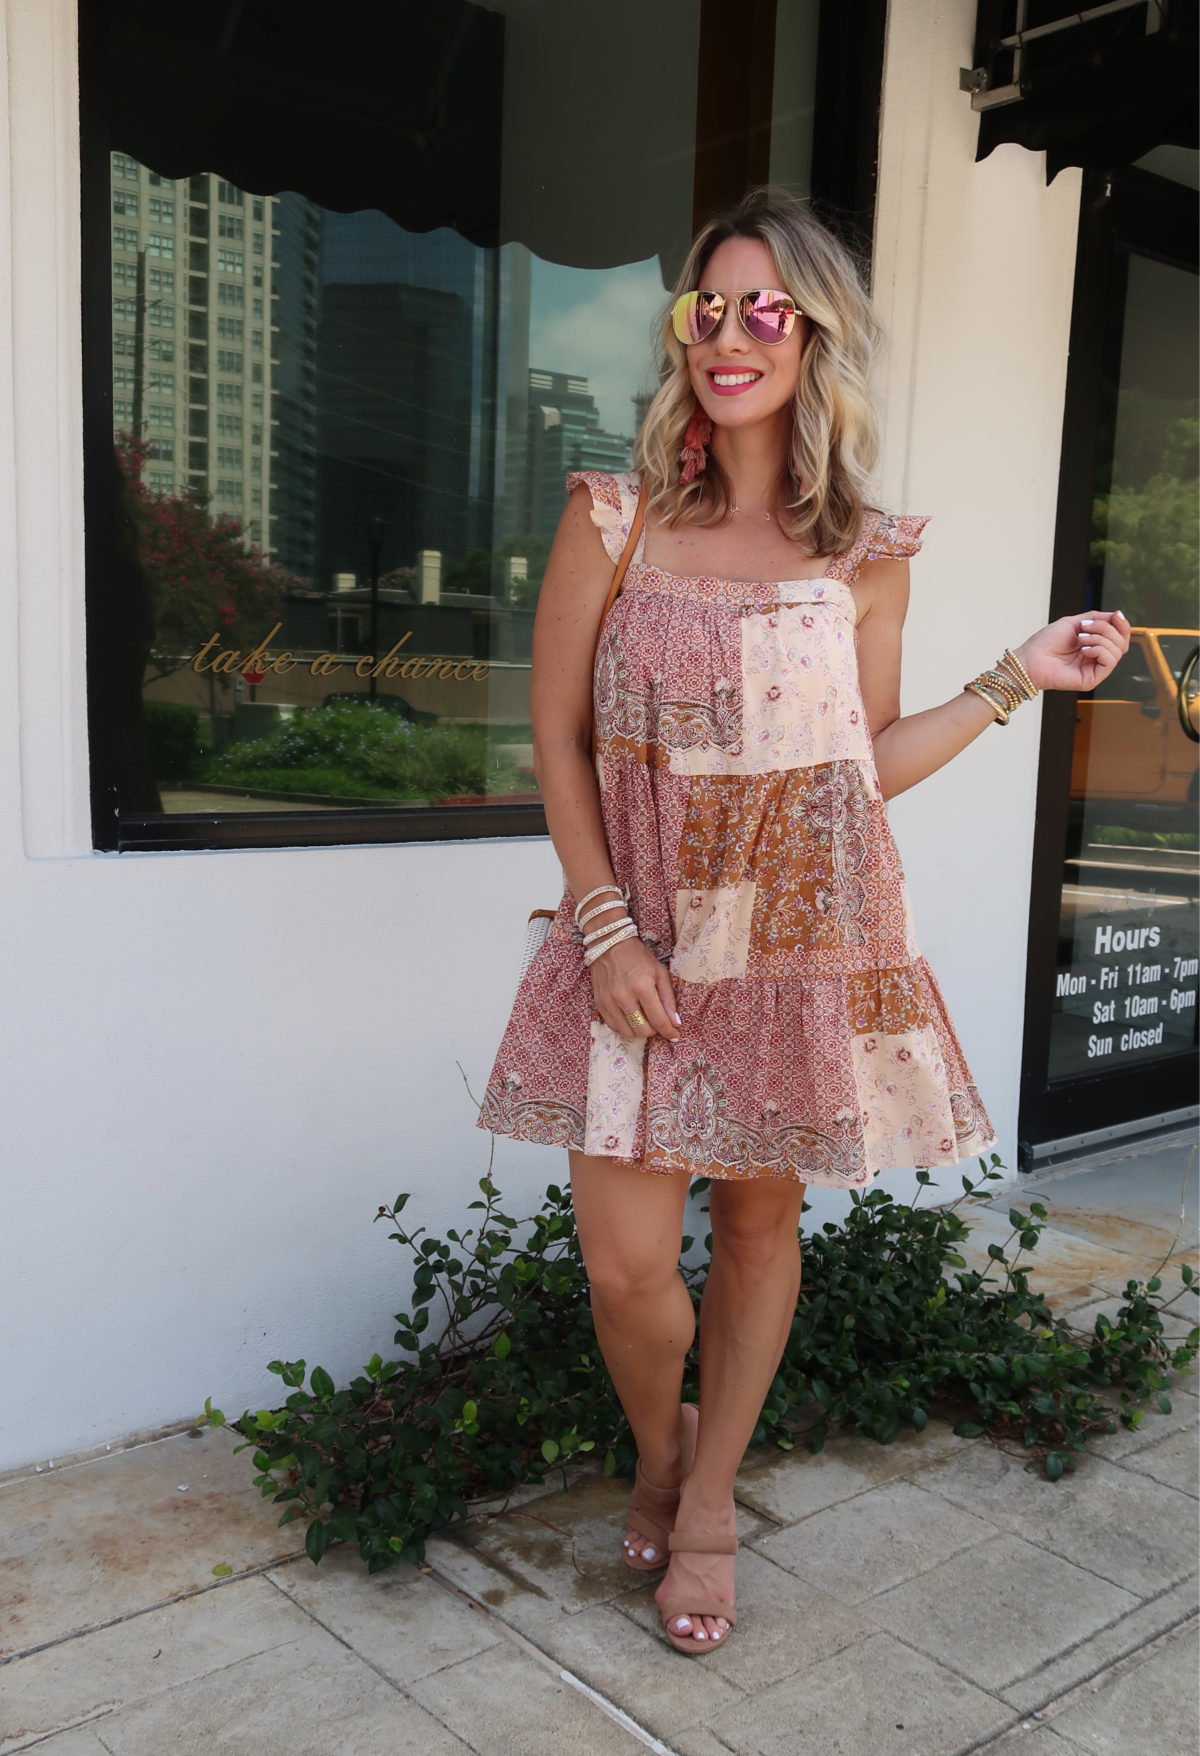 Flirty Summer Styles & Date Night Dresses,Boho Sytle Shift Dress, Sandals